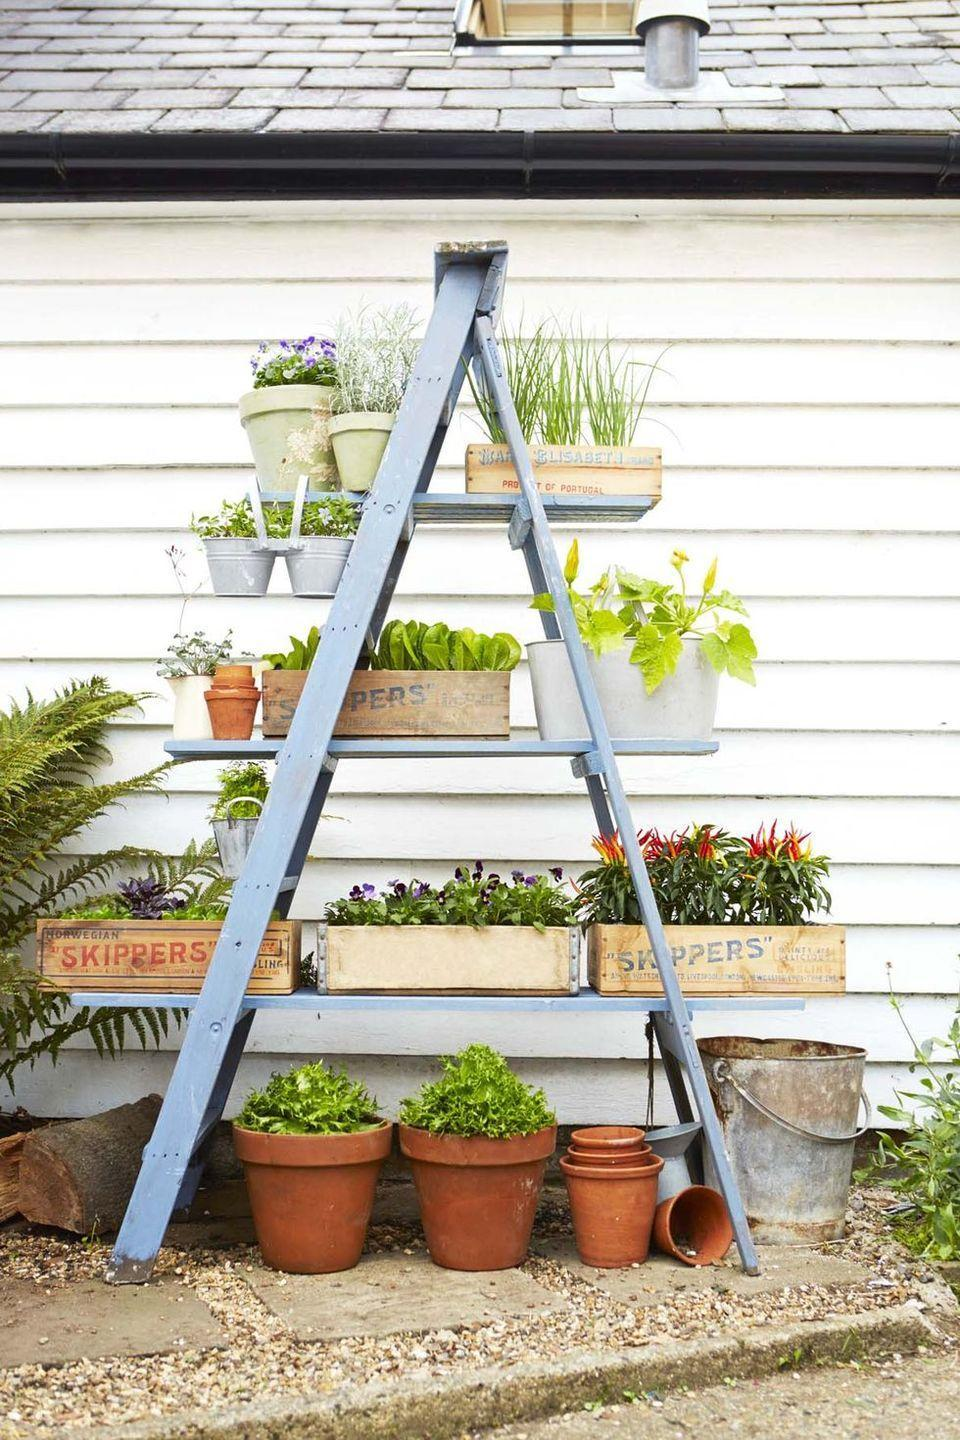 """<p>Turn a wooden ladder into a vertical stand for potted flowers, veggies, and herbs. Just give it a fresh coat of paint before you put it out on display. </p><p><em><a href=""""https://www.goodhousekeeping.com/home/gardening/advice/g76/diy-ladder-planter/"""" rel=""""nofollow noopener"""" target=""""_blank"""" data-ylk=""""slk:Get the tutorial »"""" class=""""link rapid-noclick-resp"""">Get the tutorial »</a></em></p>"""